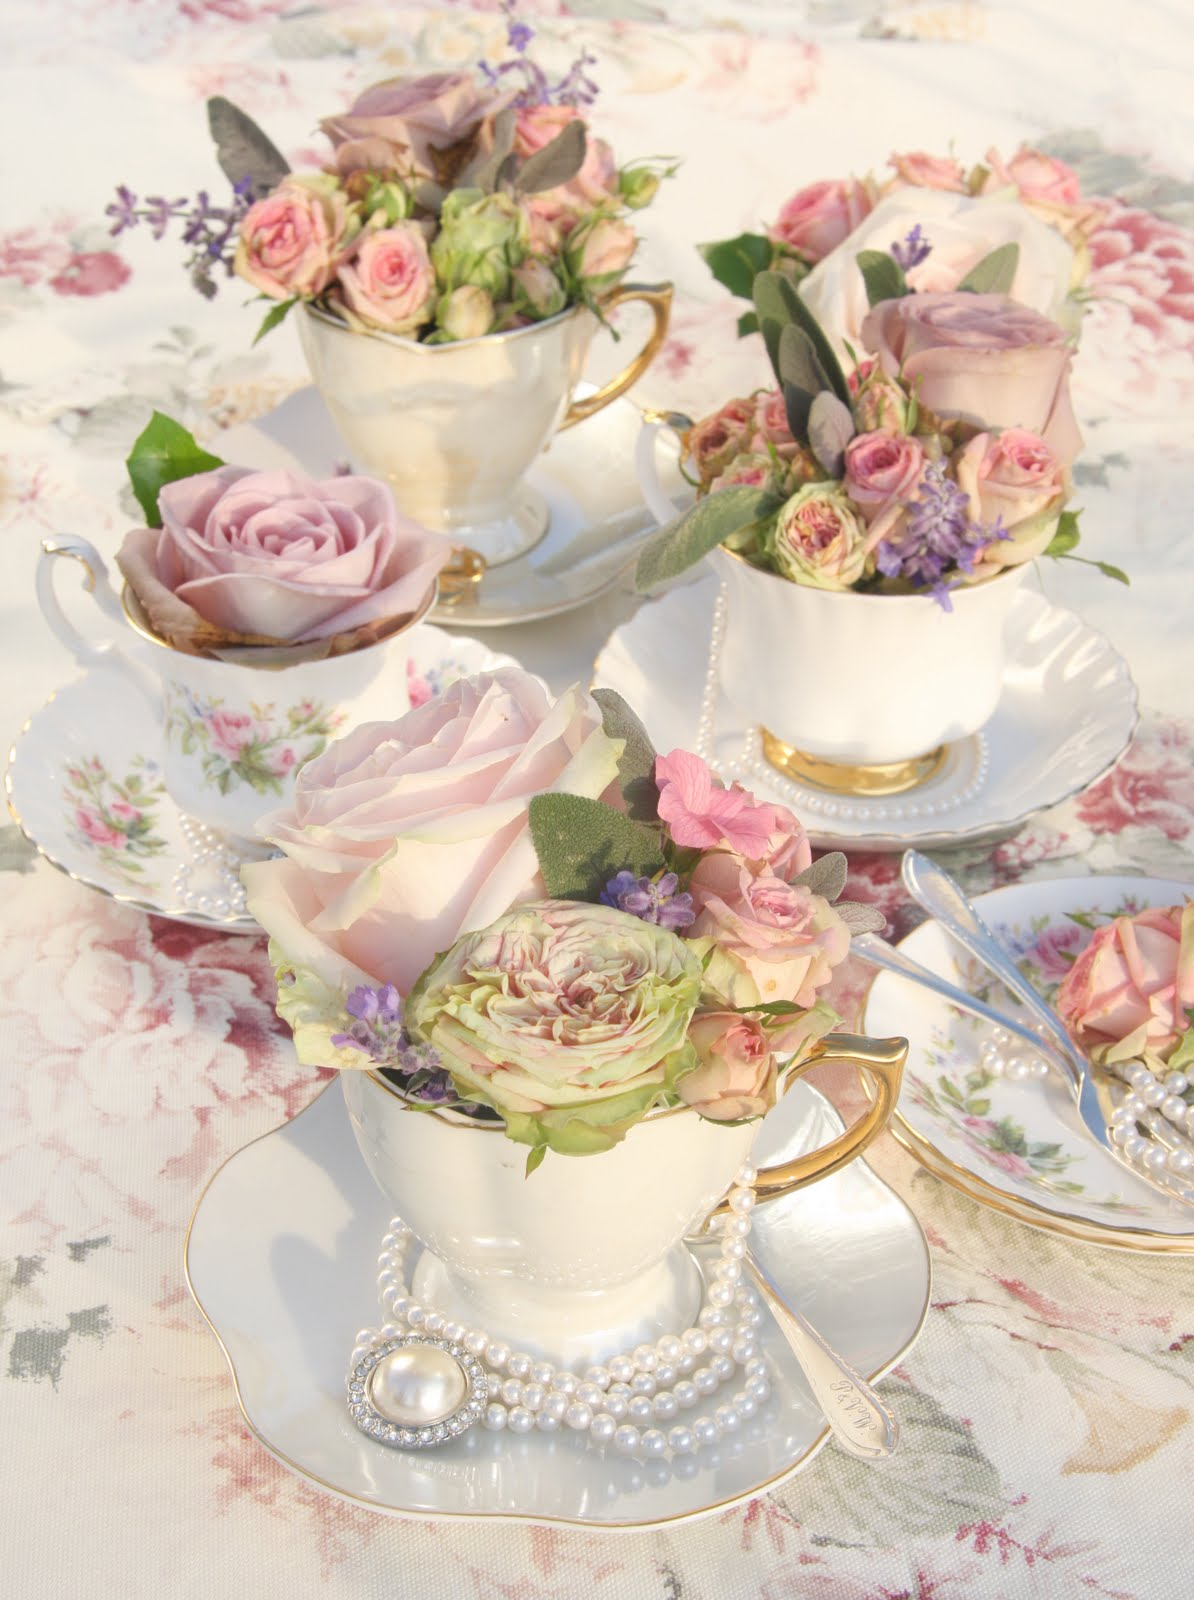 Best 25+ Tea party centerpieces ideas on Pinterest ...